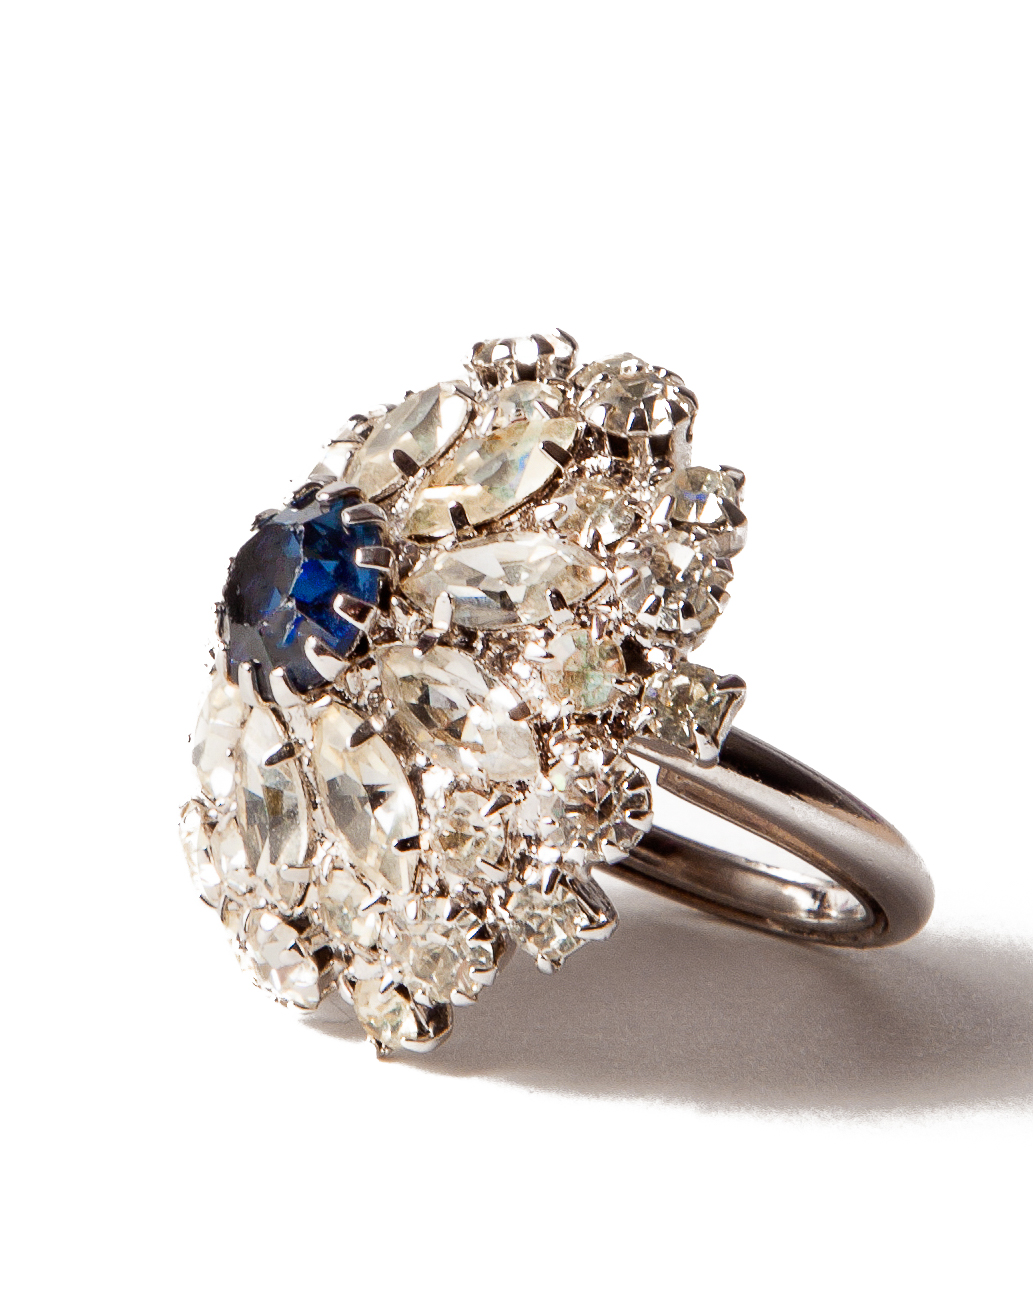 Blue Sapphire and Crystal Cocktail Ring, circa 1950's